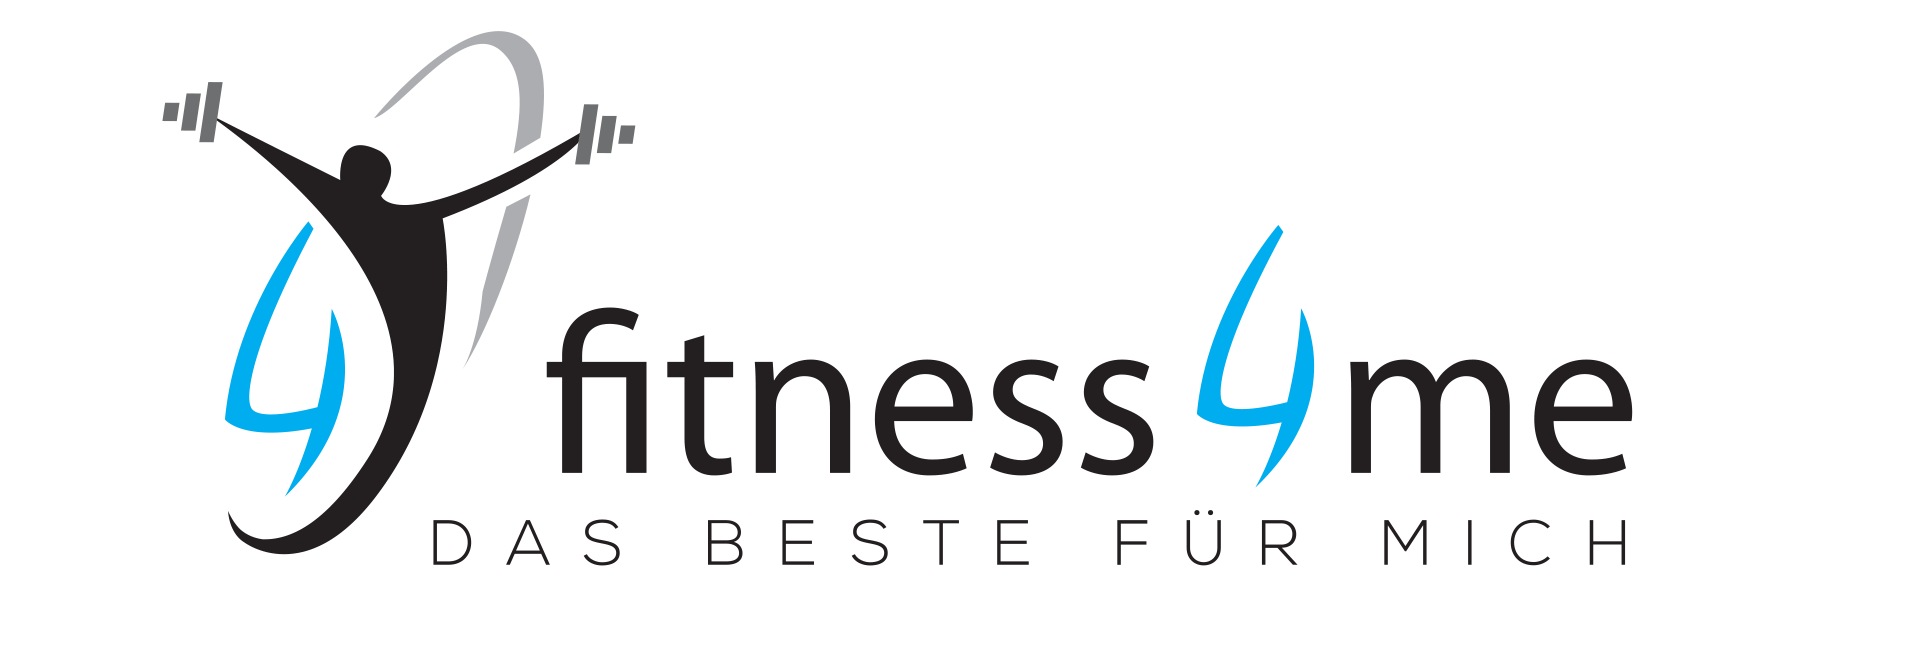 fitness4me Personal Training!